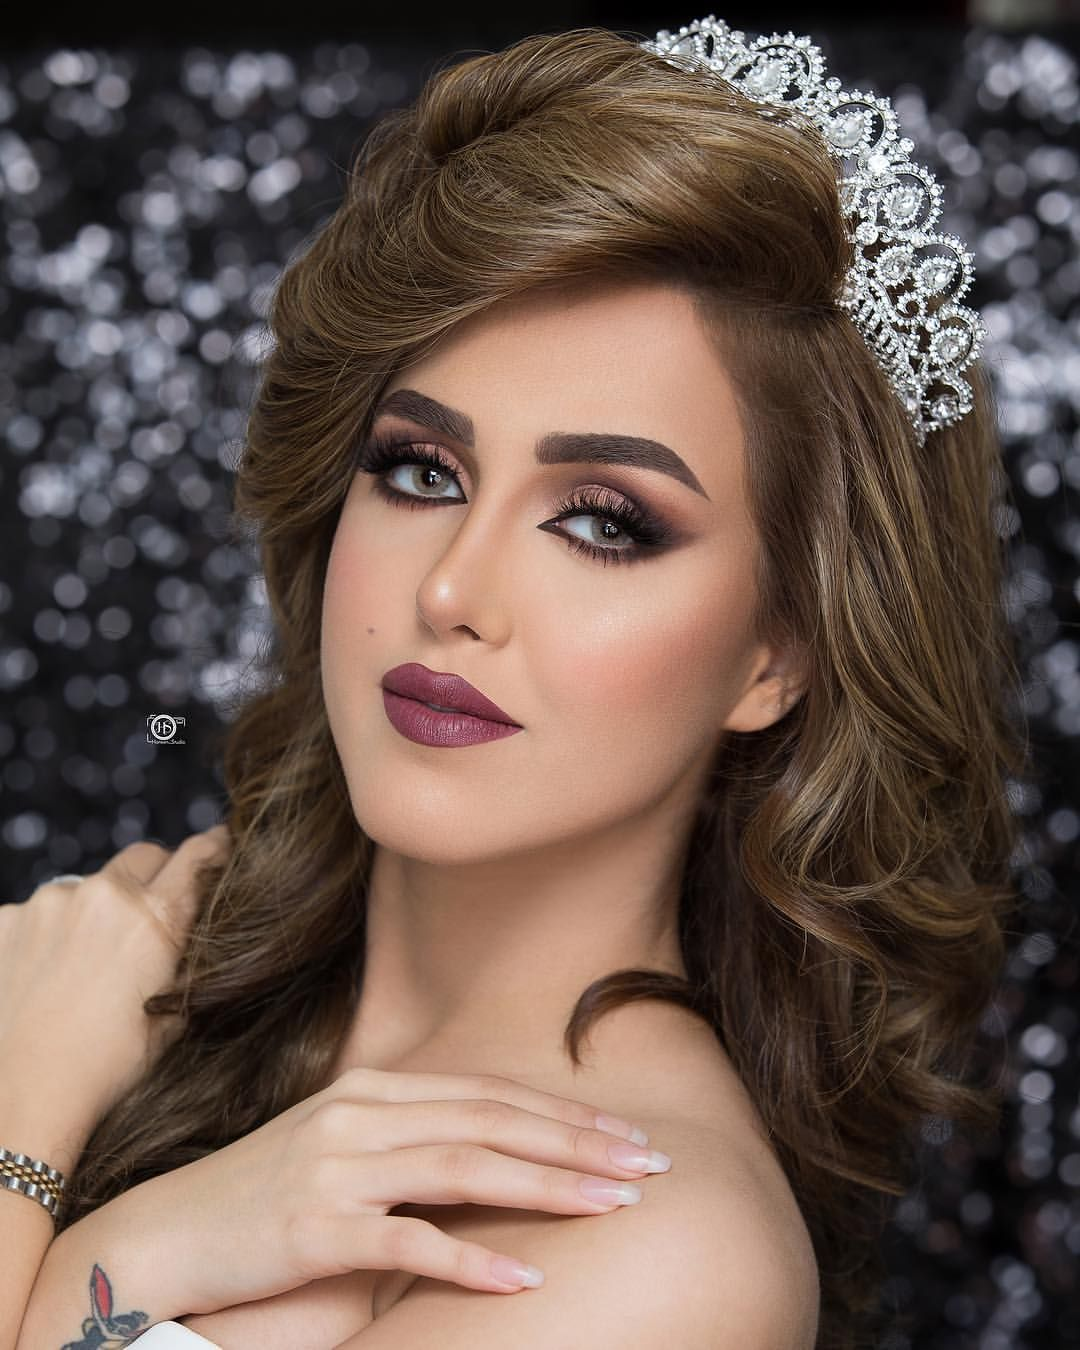 606 Likes 7 Comments Makeup Artist From Uae Faiza Alkasadi Makeup On Instagram Hairdo Wedding Bride Makeup Bridal Party Makeup